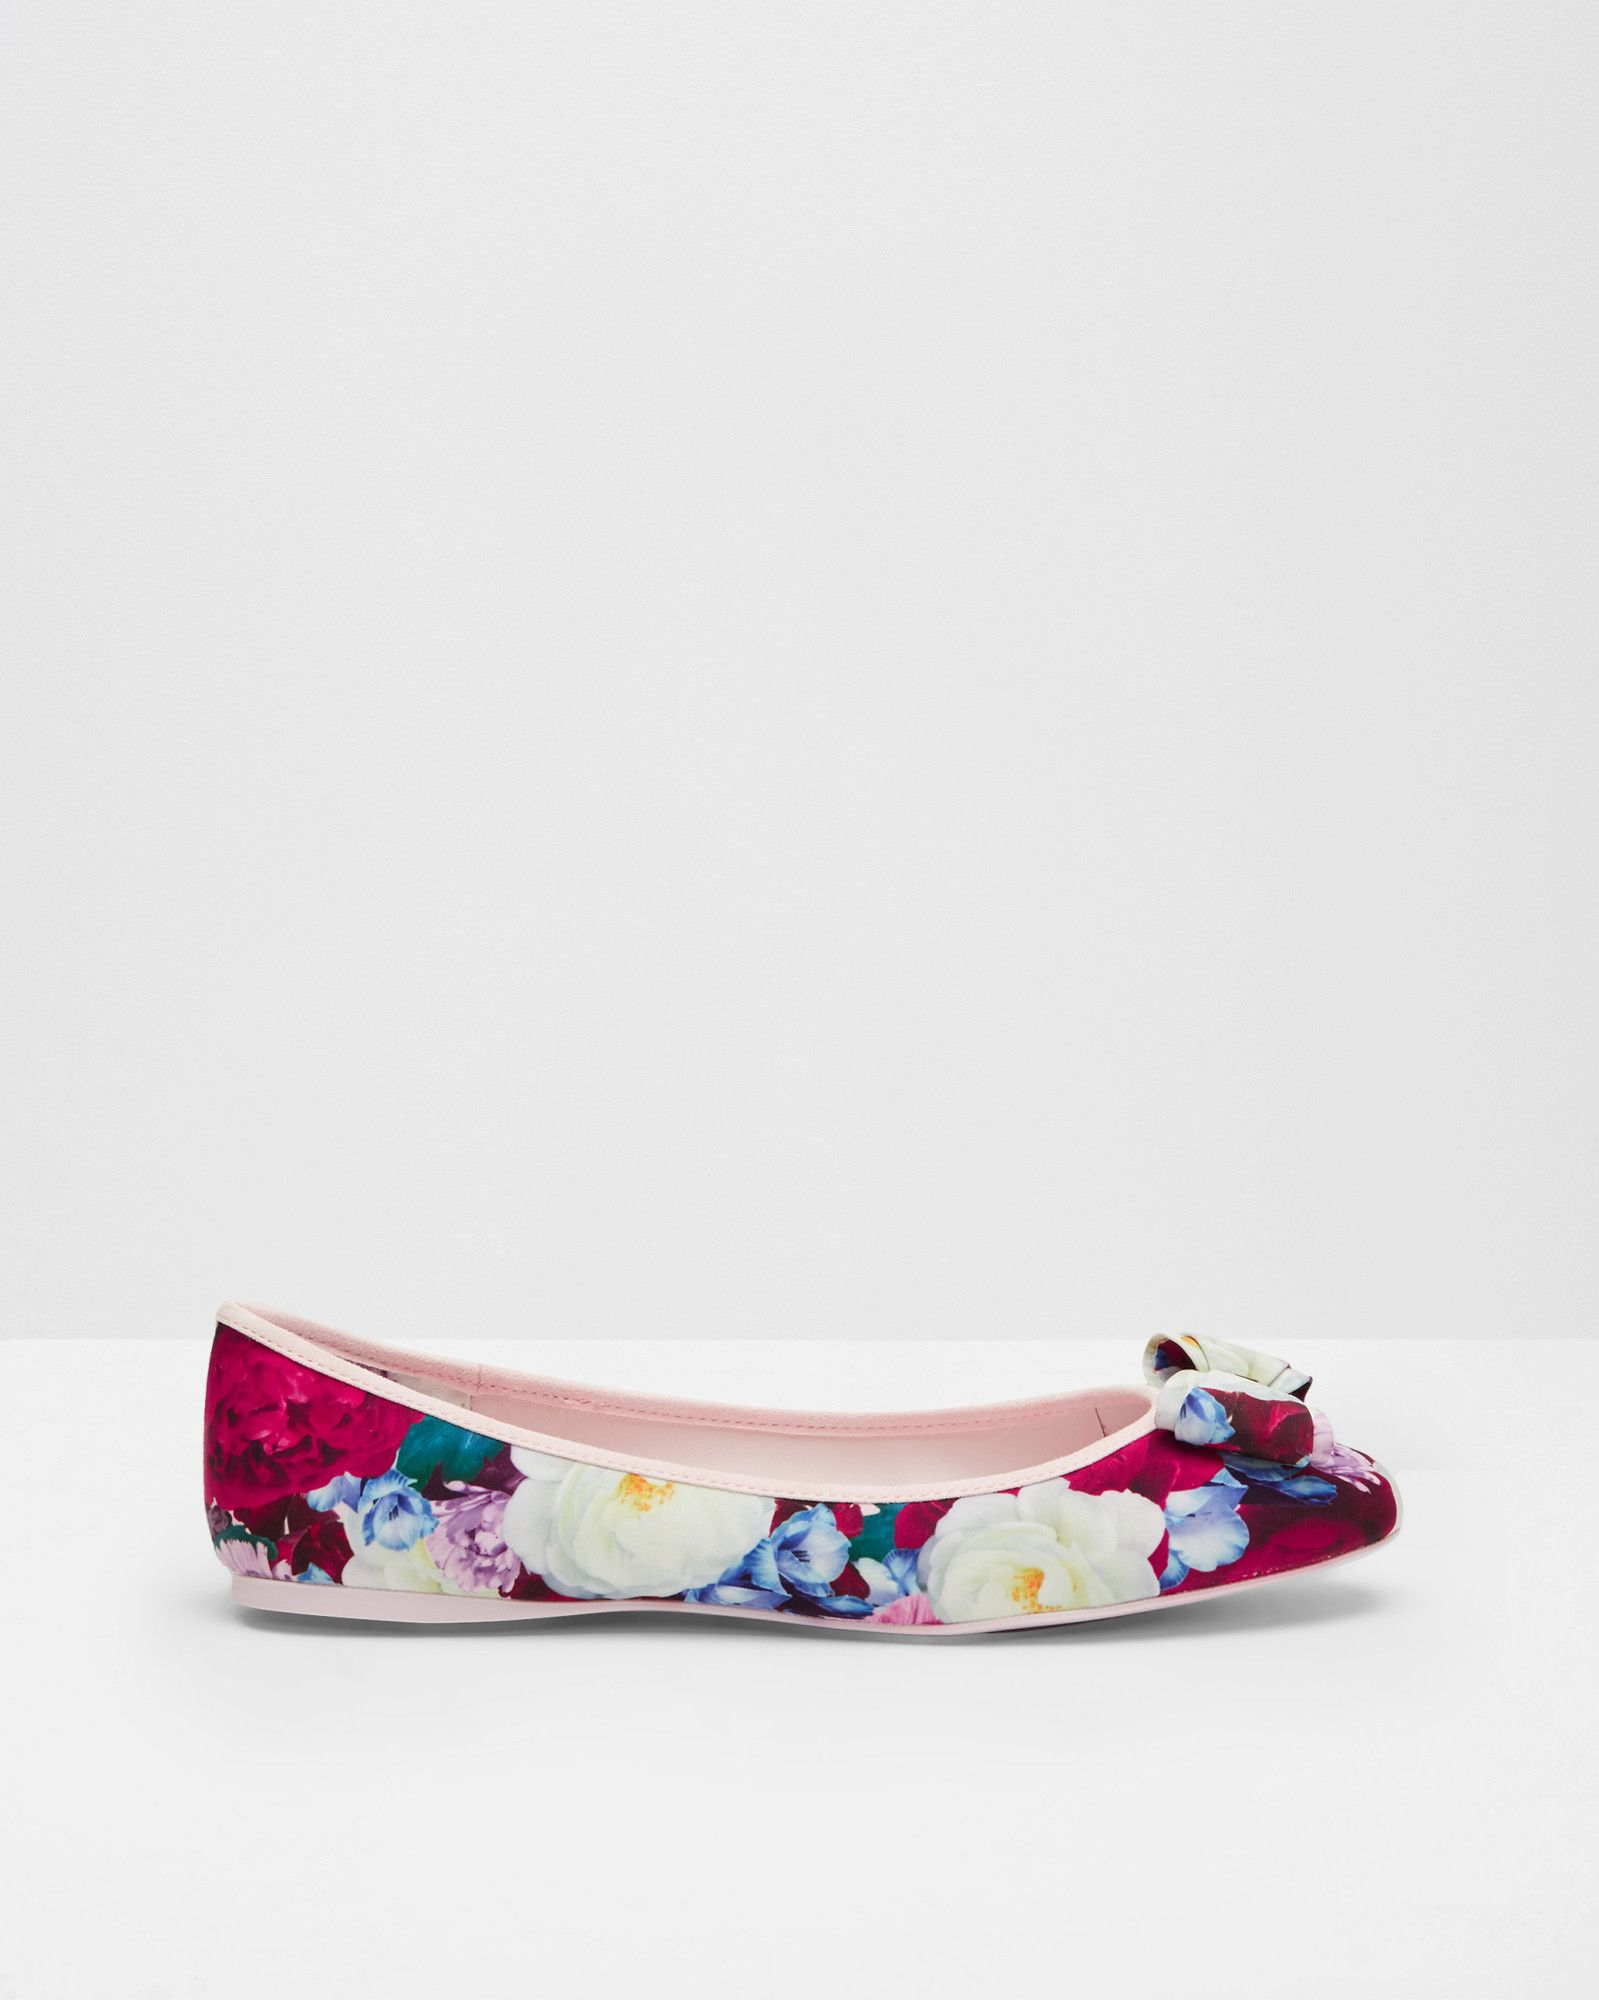 037aad0fab38a0 Printed bow detail pumps - Deep Pink